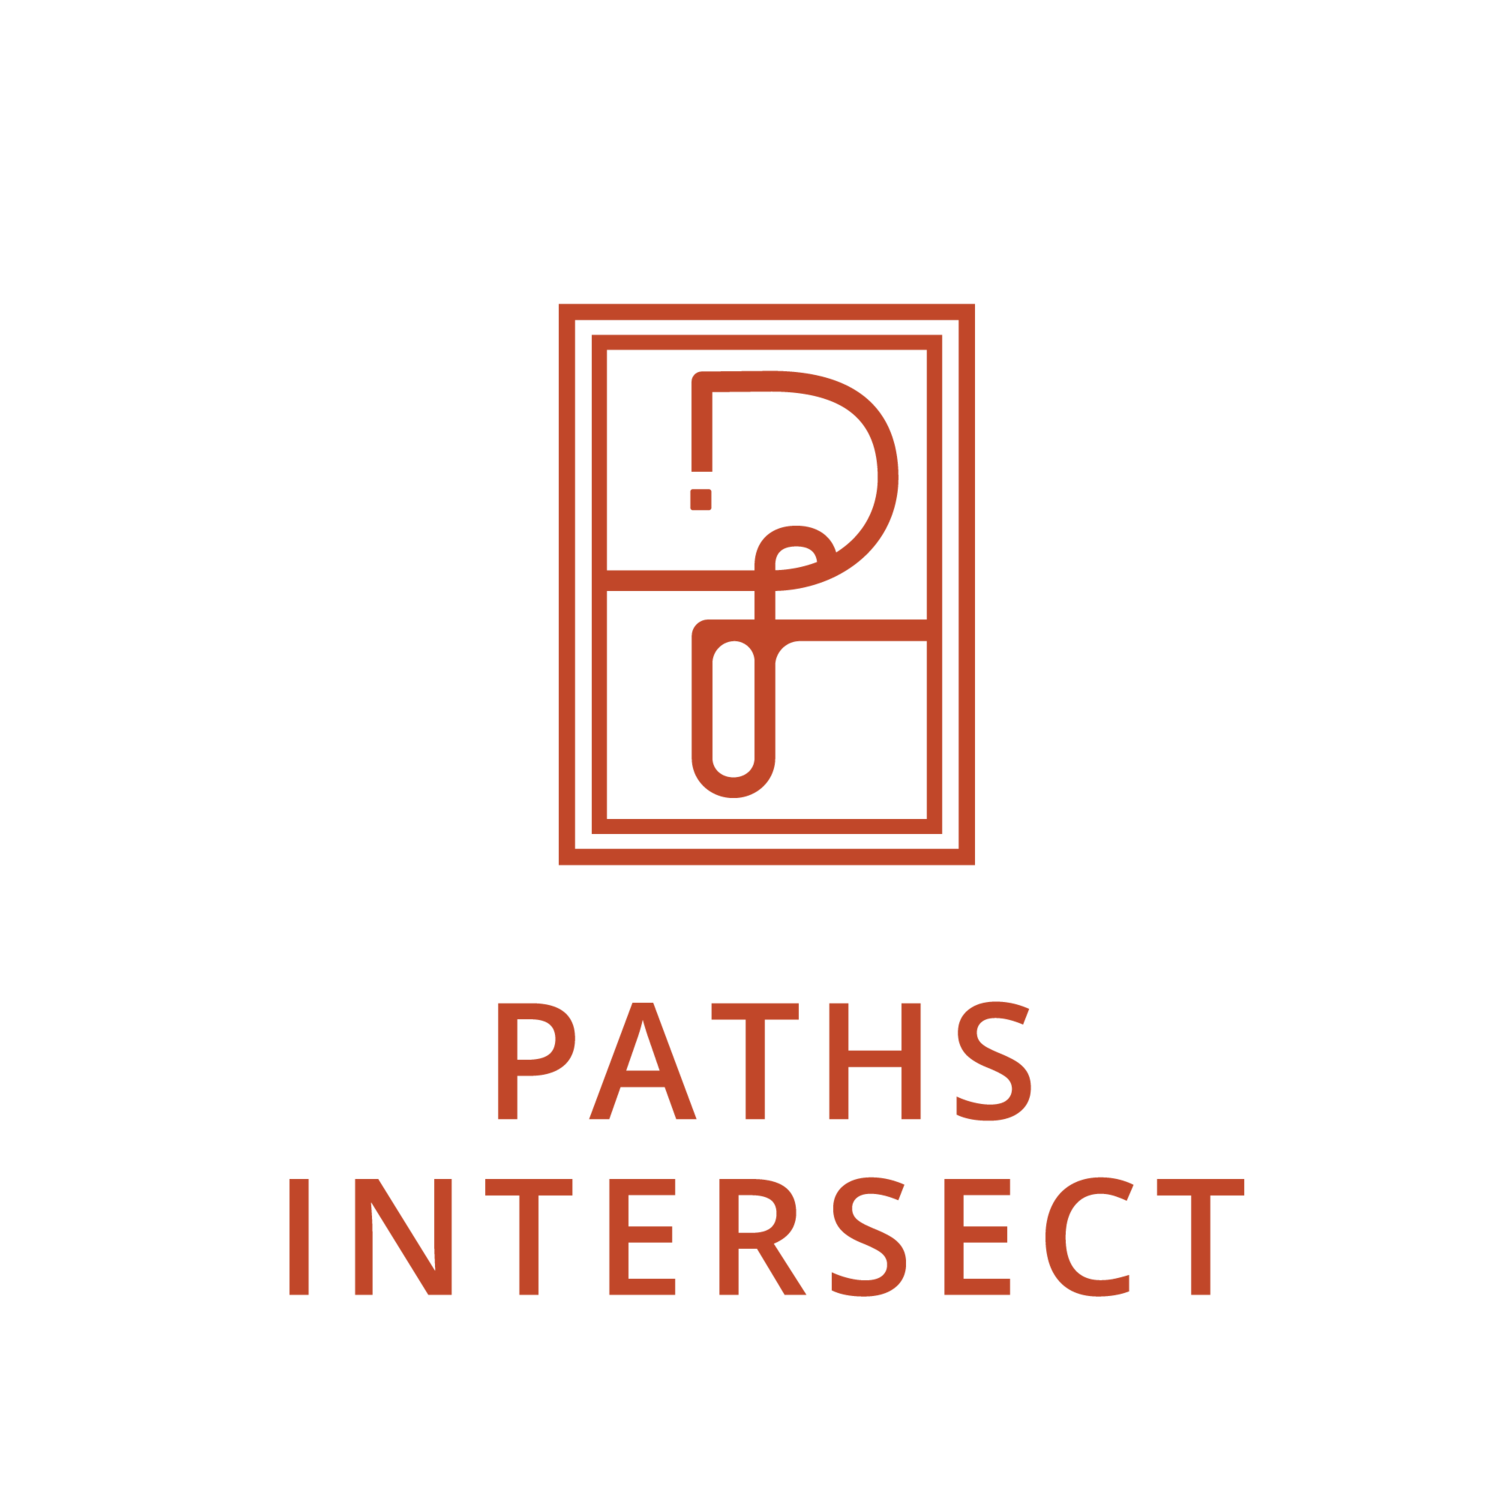 Paths Intersect